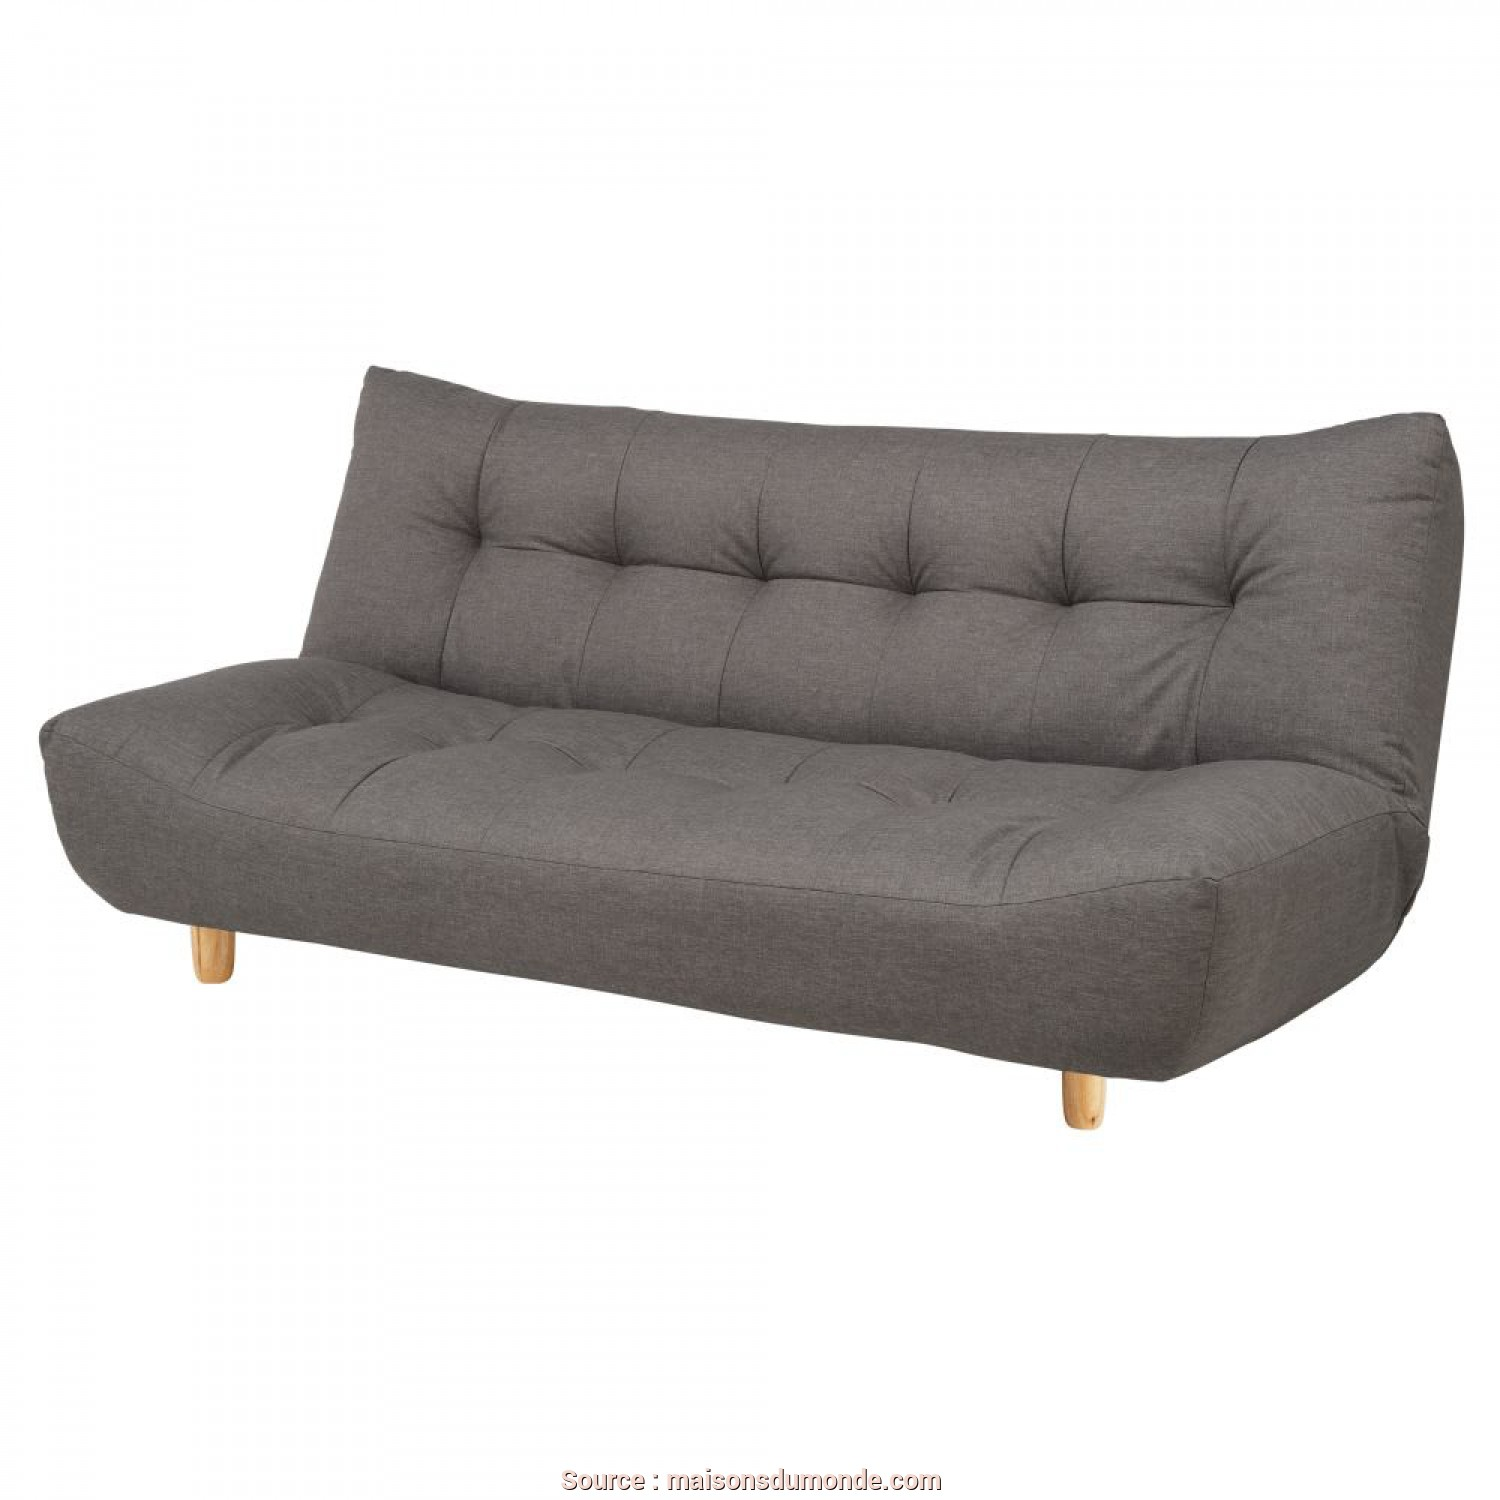 Divano Cloud Maison Du Monde, Magnifico 3-Seater Clic Clac Sofa, In Grey Cloud